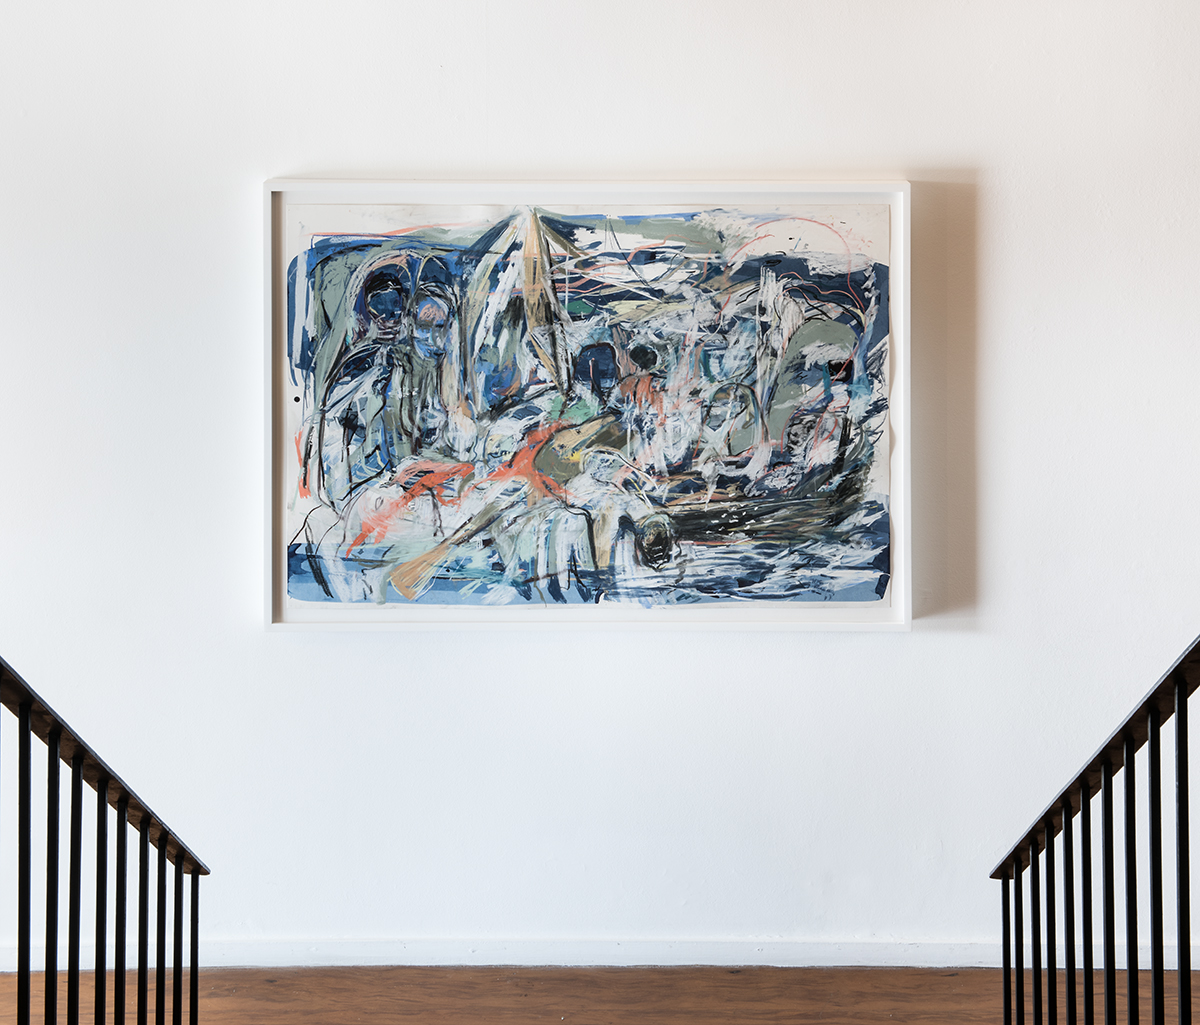 CECILY BROWN | FLAVIO DE CARVALHO | TUNGA, mar – mai | Mar – May 2018